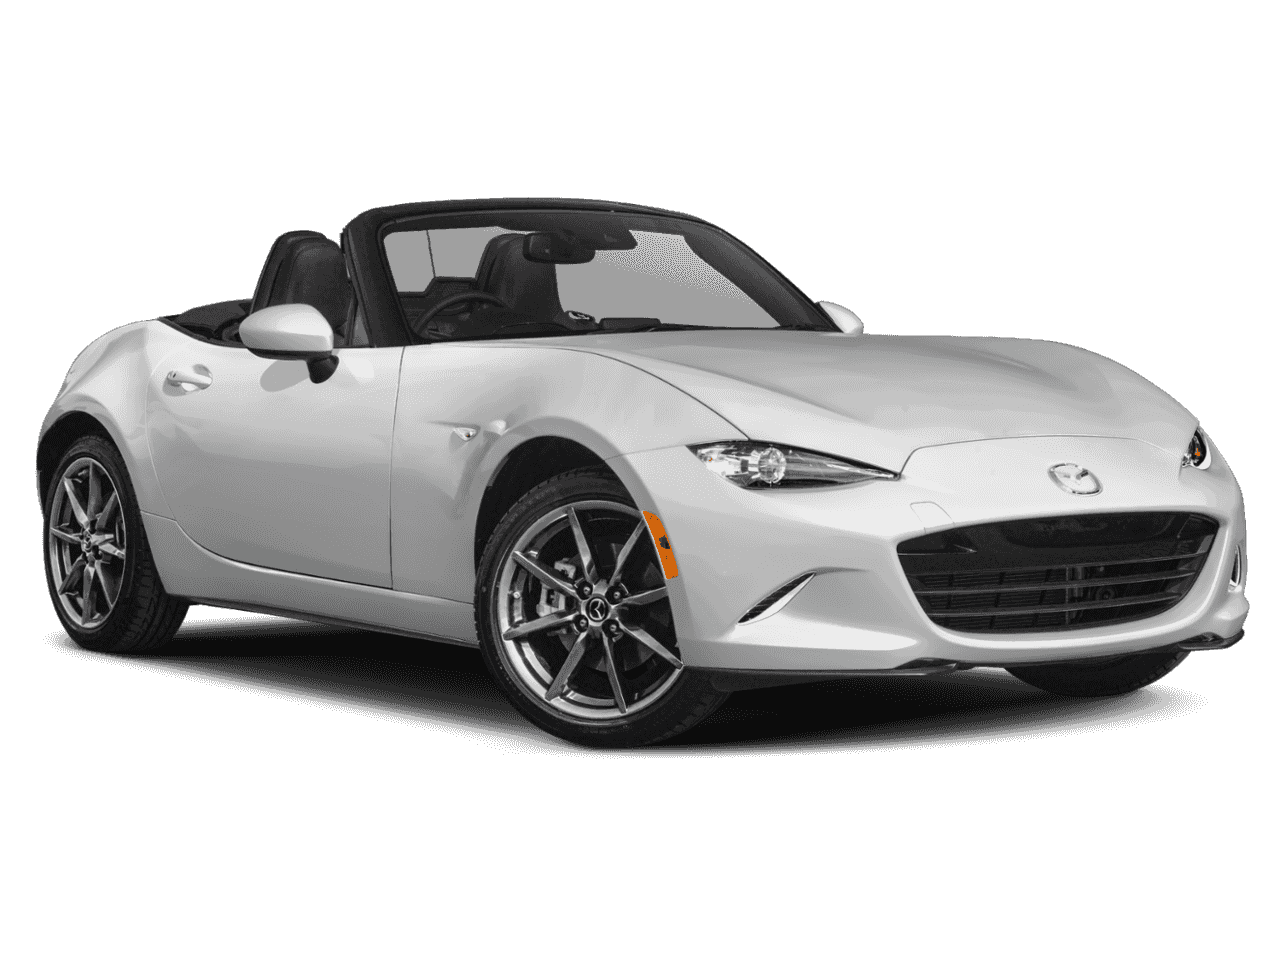 2019 Mazda MX-5 Miata Grand Touring RWD Convertible